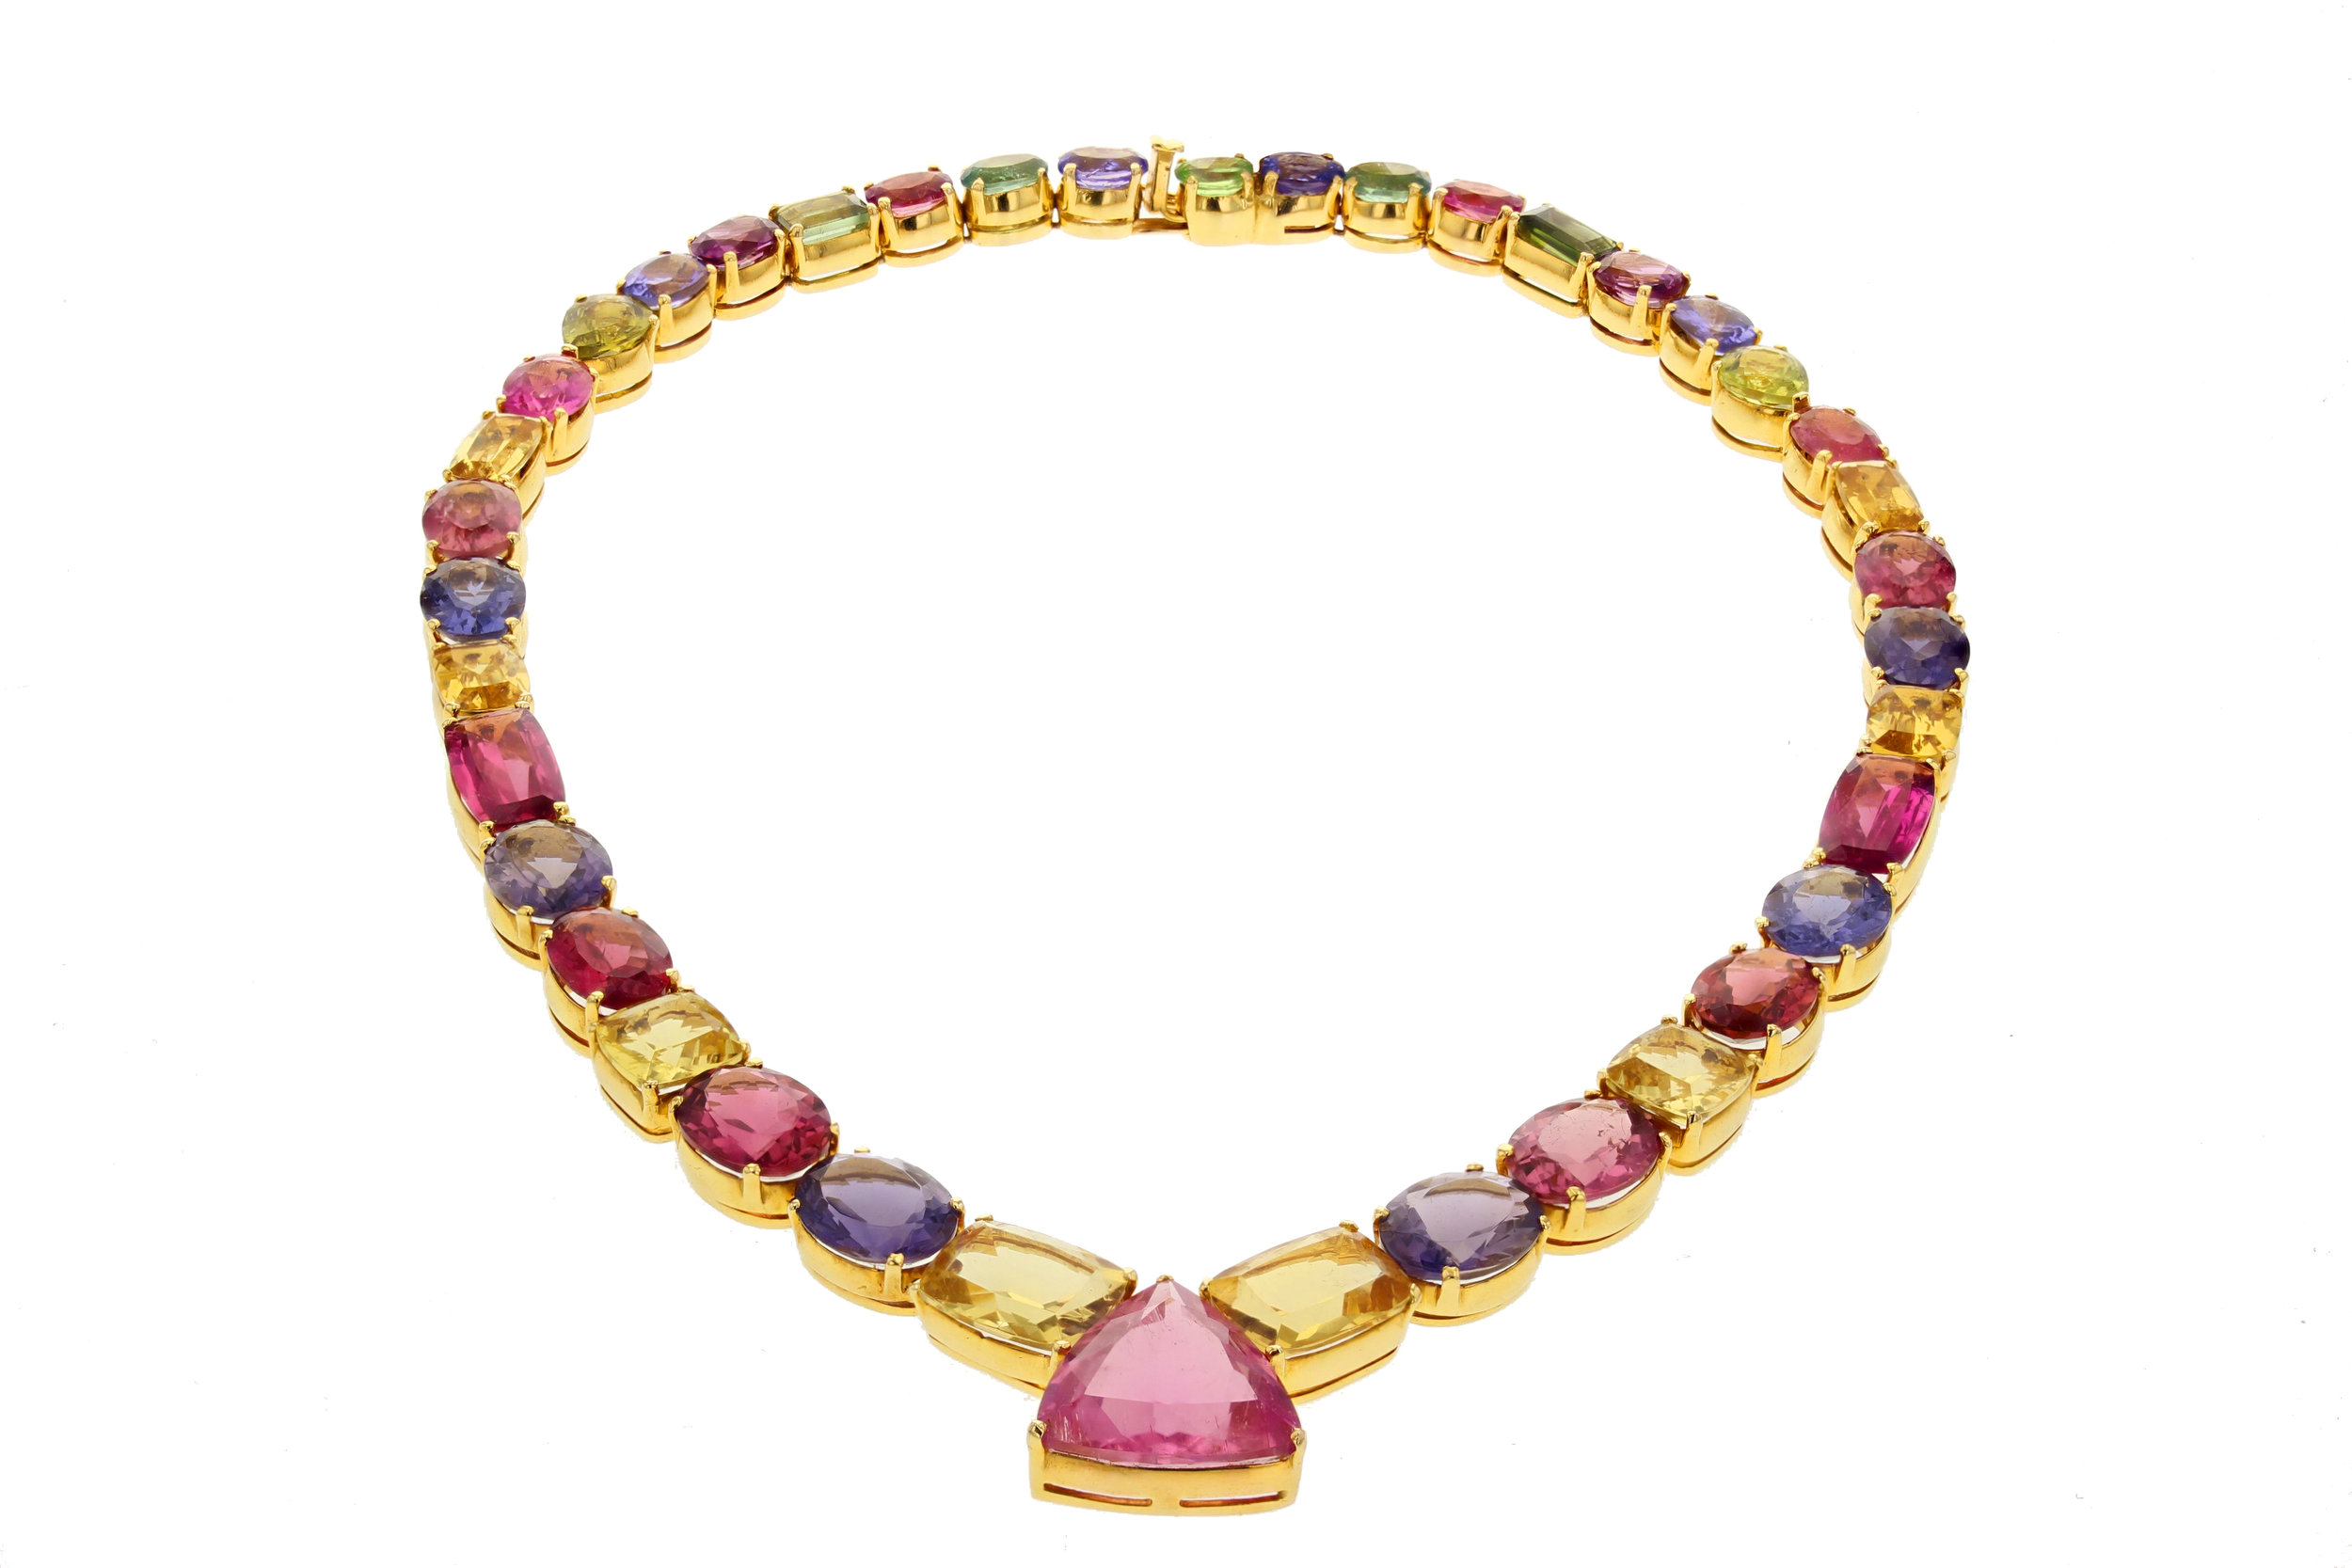 92 ctw. Tourmaline necklace. $16,875